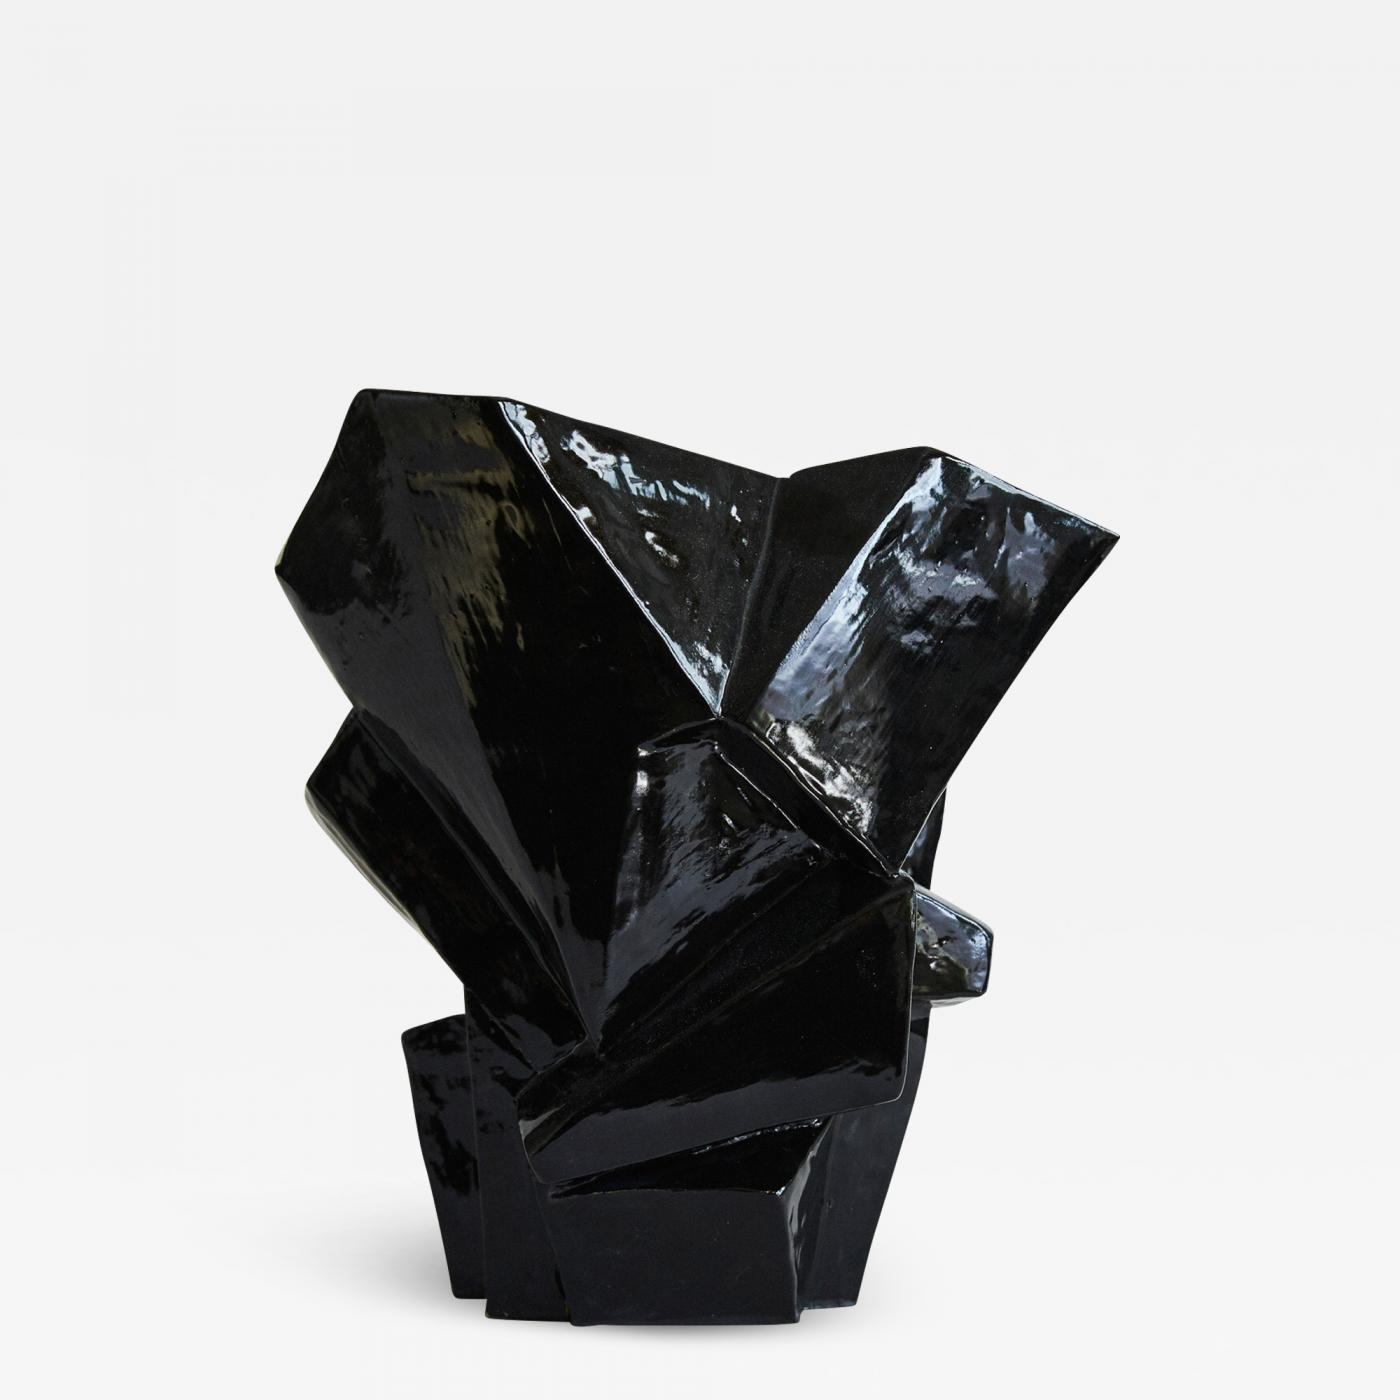 Wheel-thrown and manipulated cubist vessel.